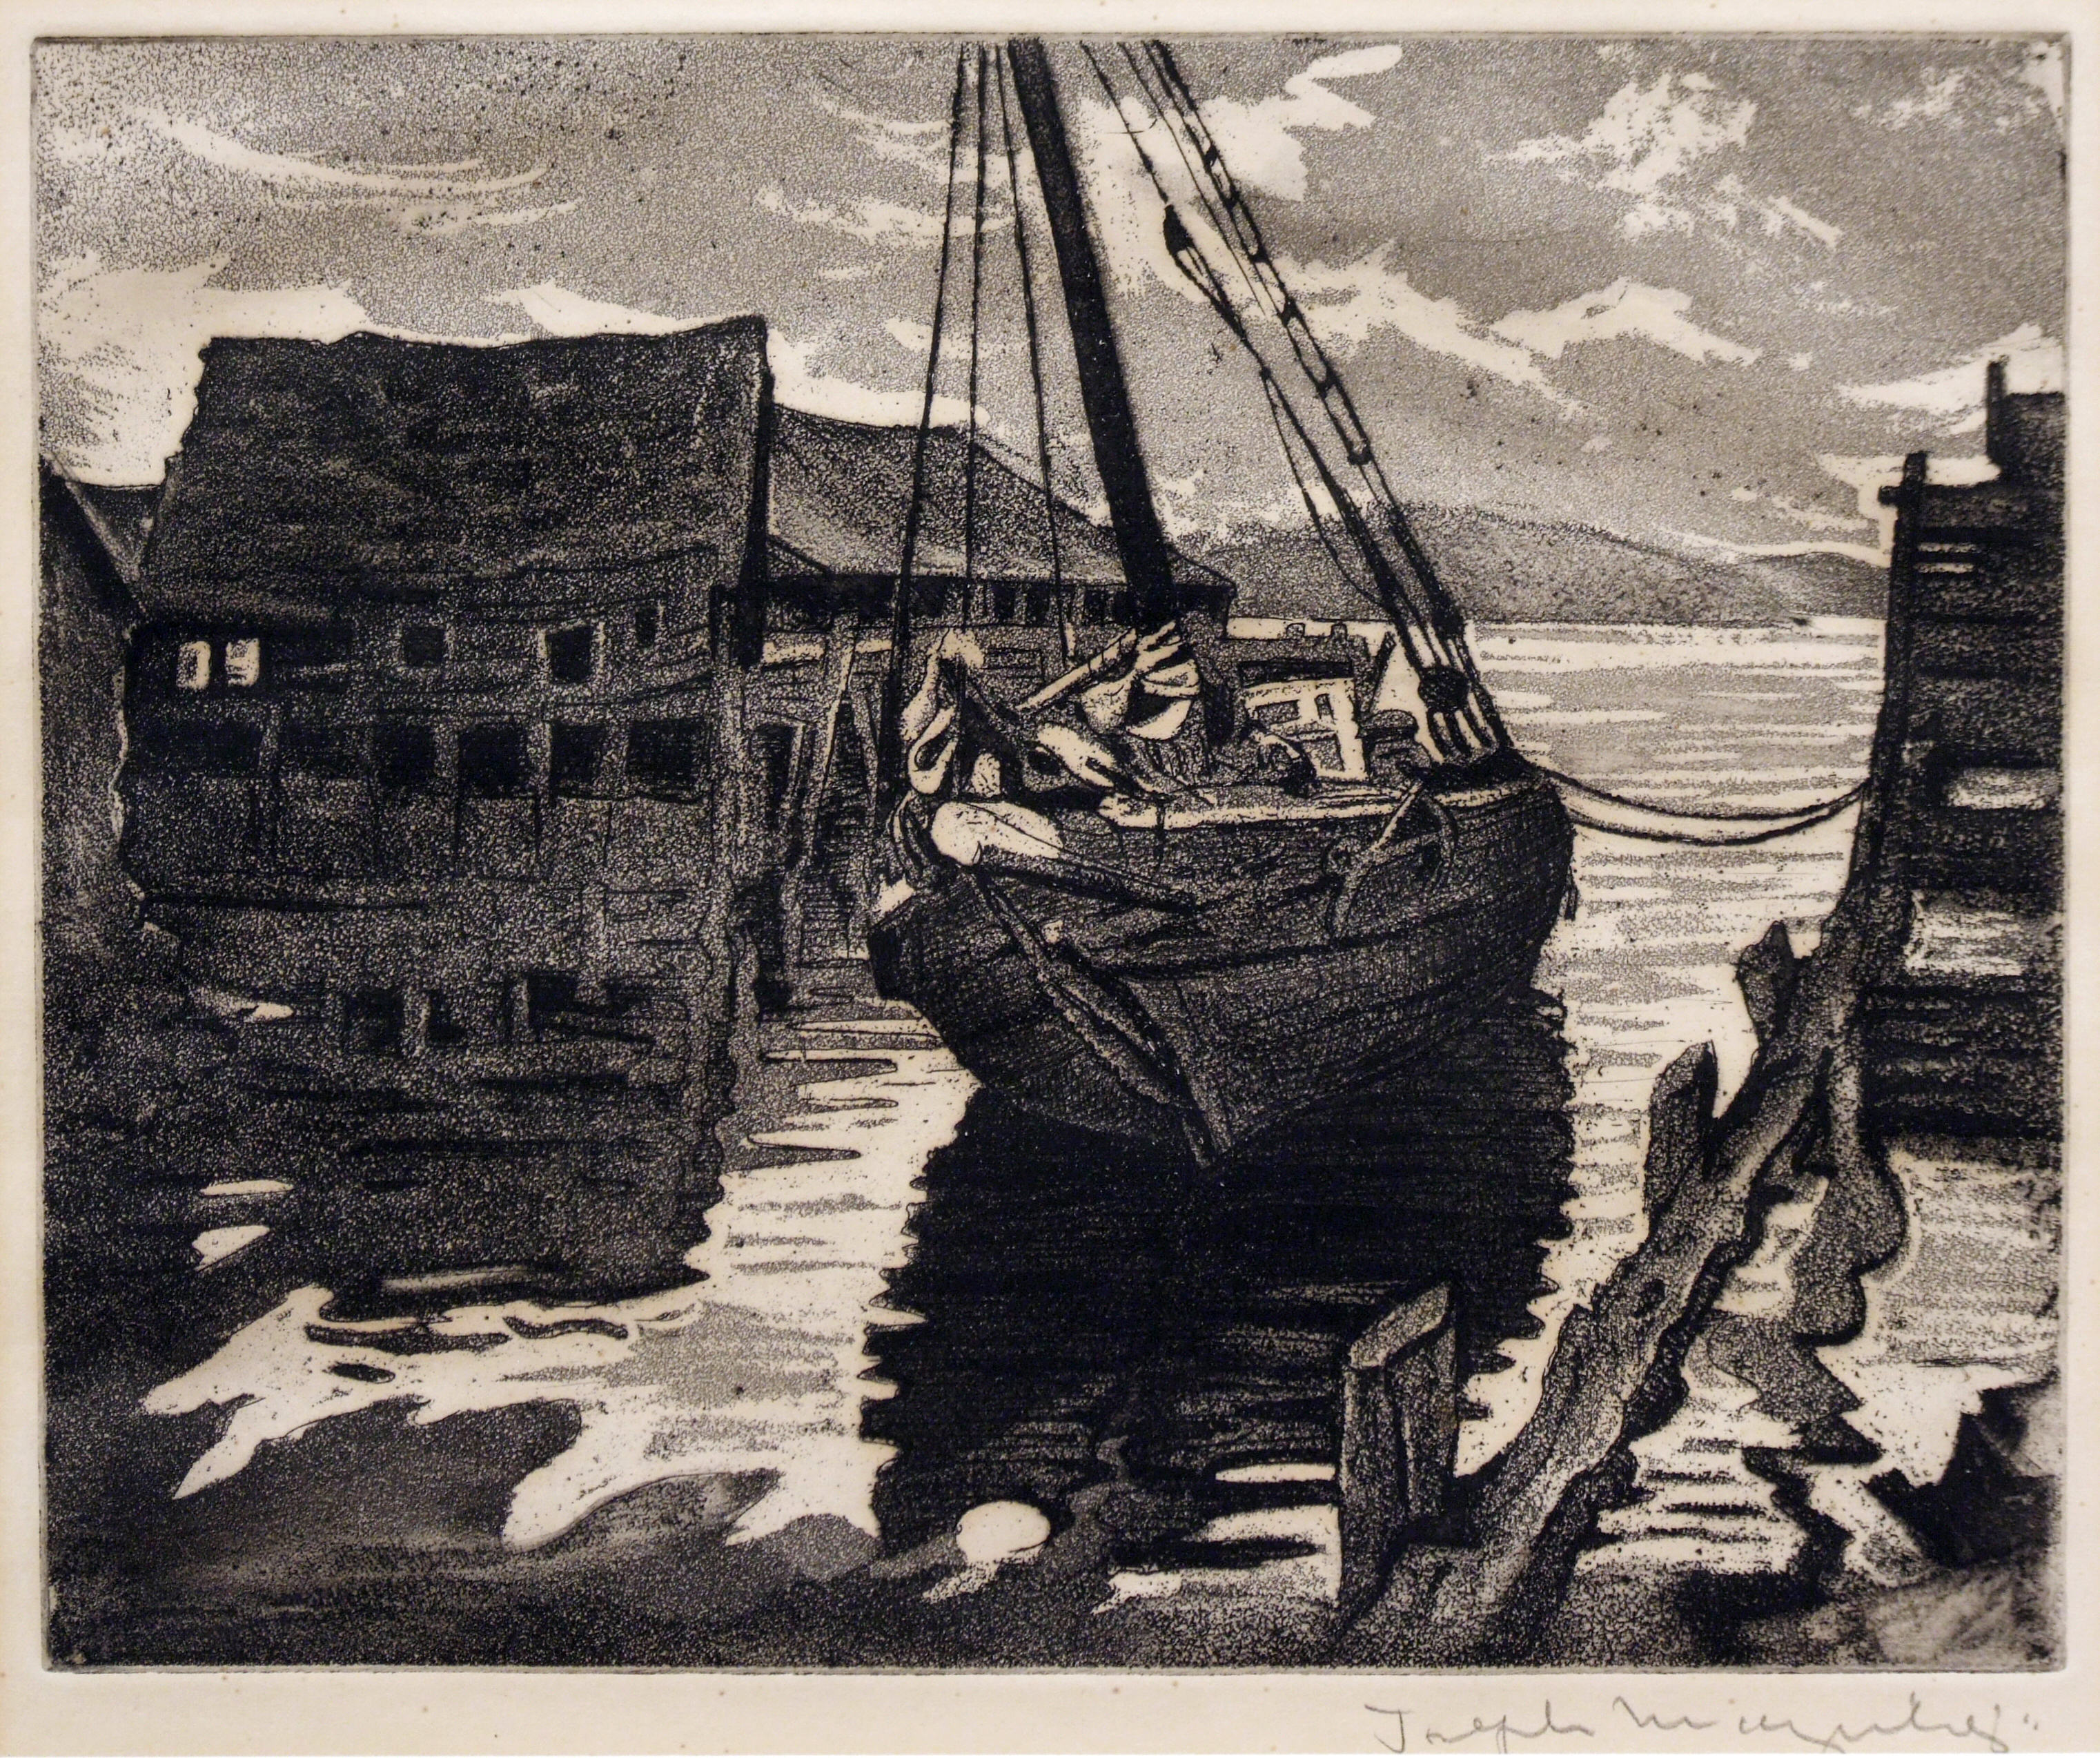 1986.015 | Joseph Margulies | PEACEFUL HARBOR | etching on paper | 7-1/2 x 10-1/4"